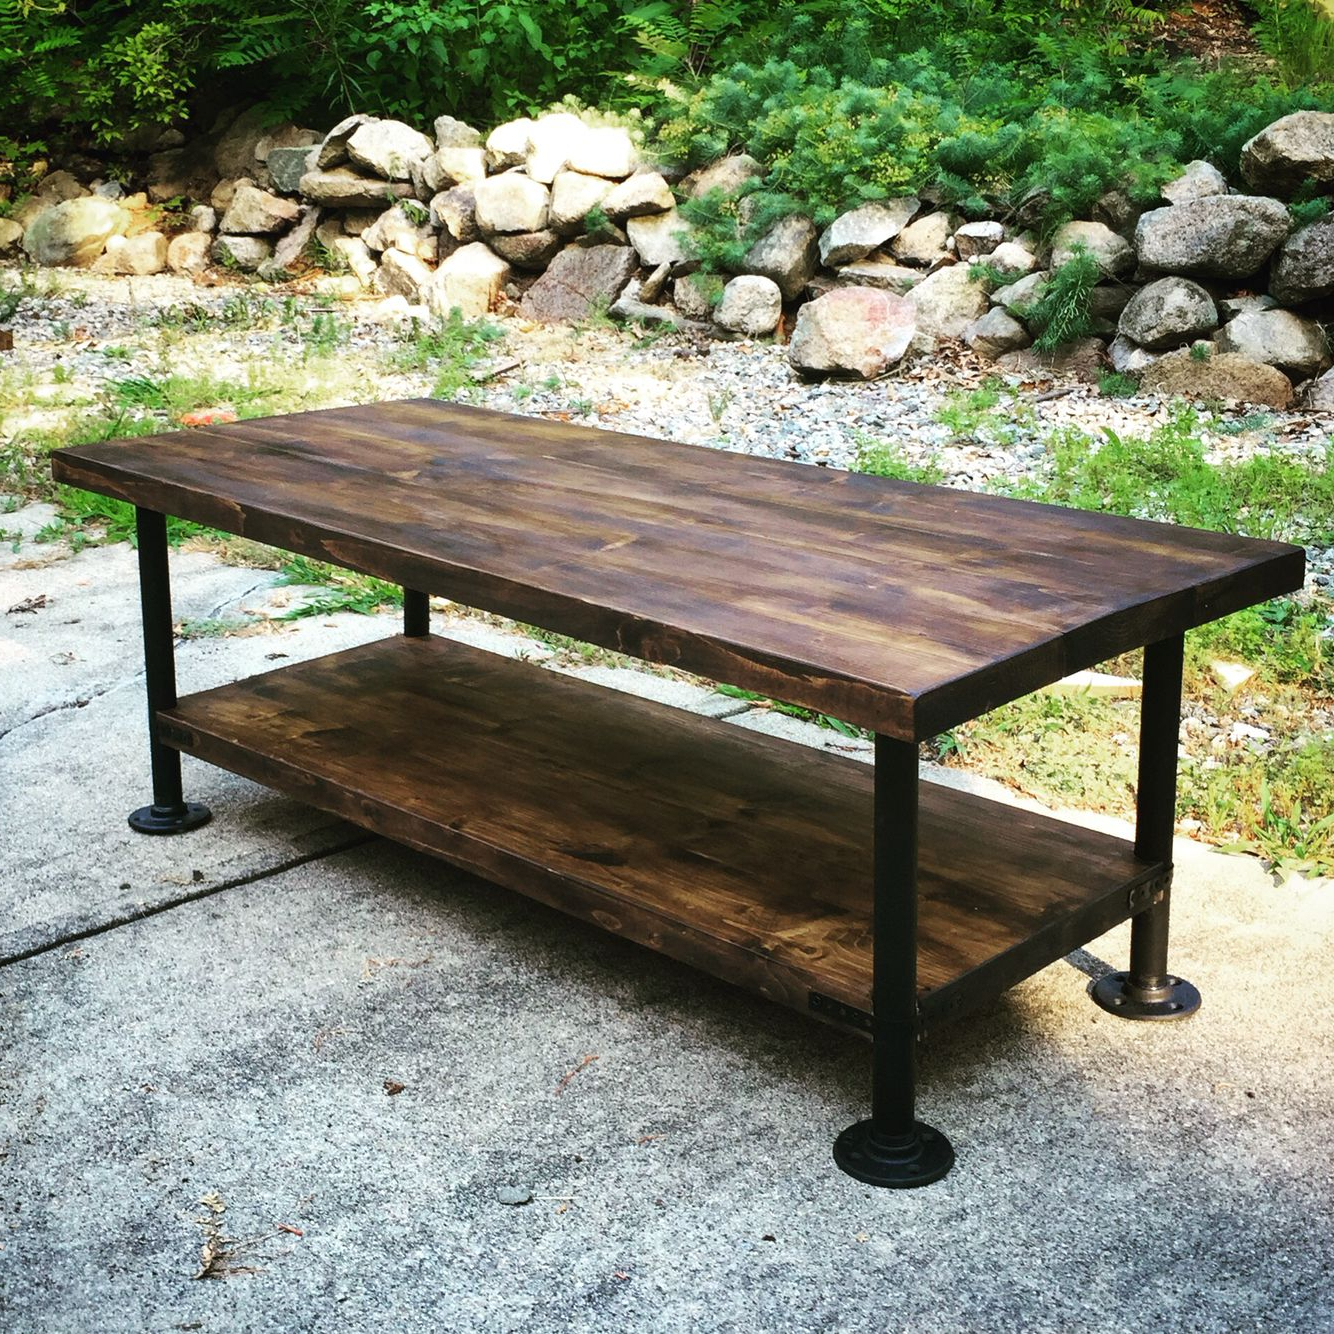 Industrial Style Wood Coffee Table With Steel Pipe Legs (View 7 of 20)